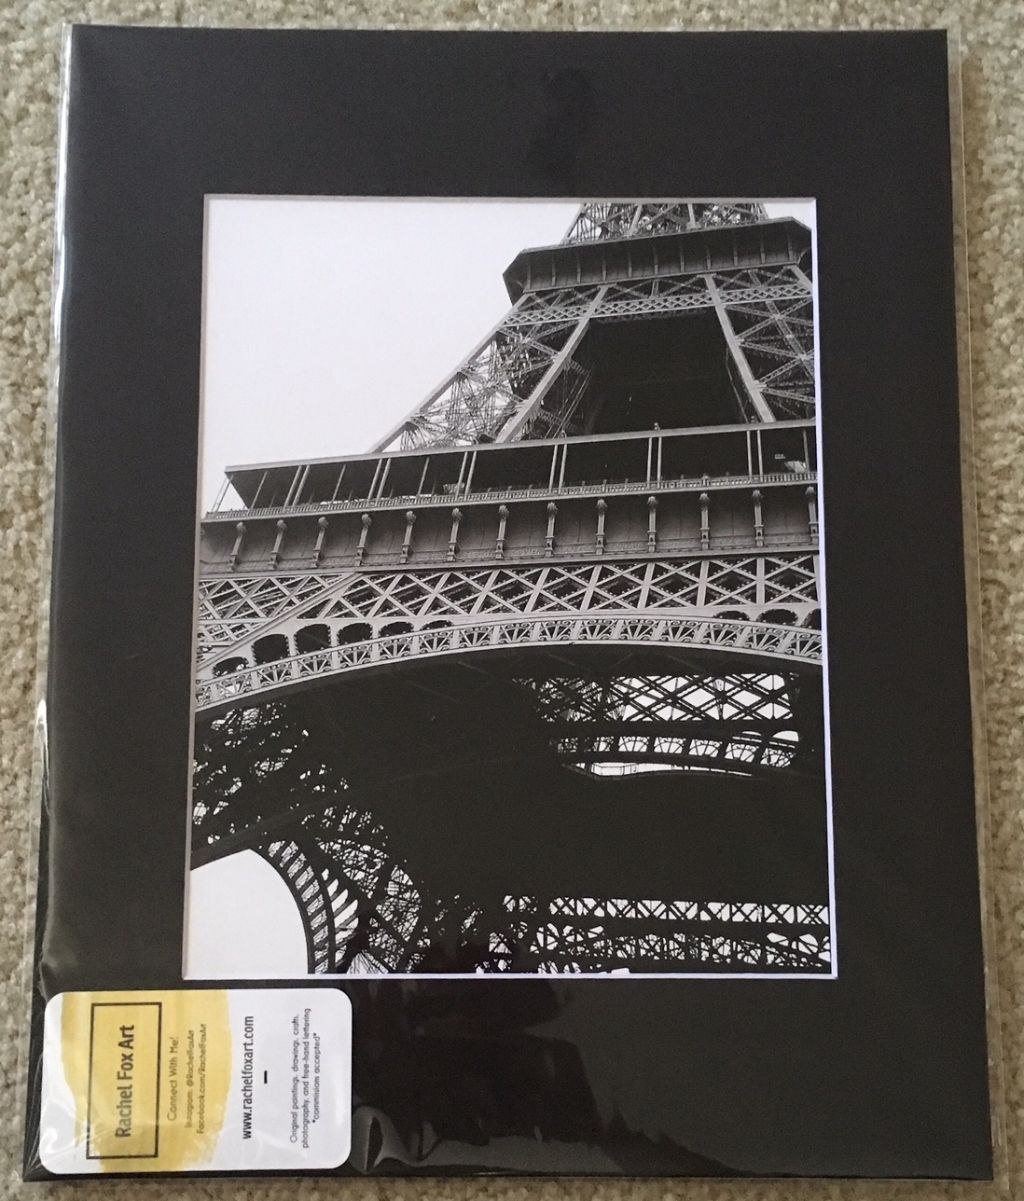 Paris 11x14 Matted Photo